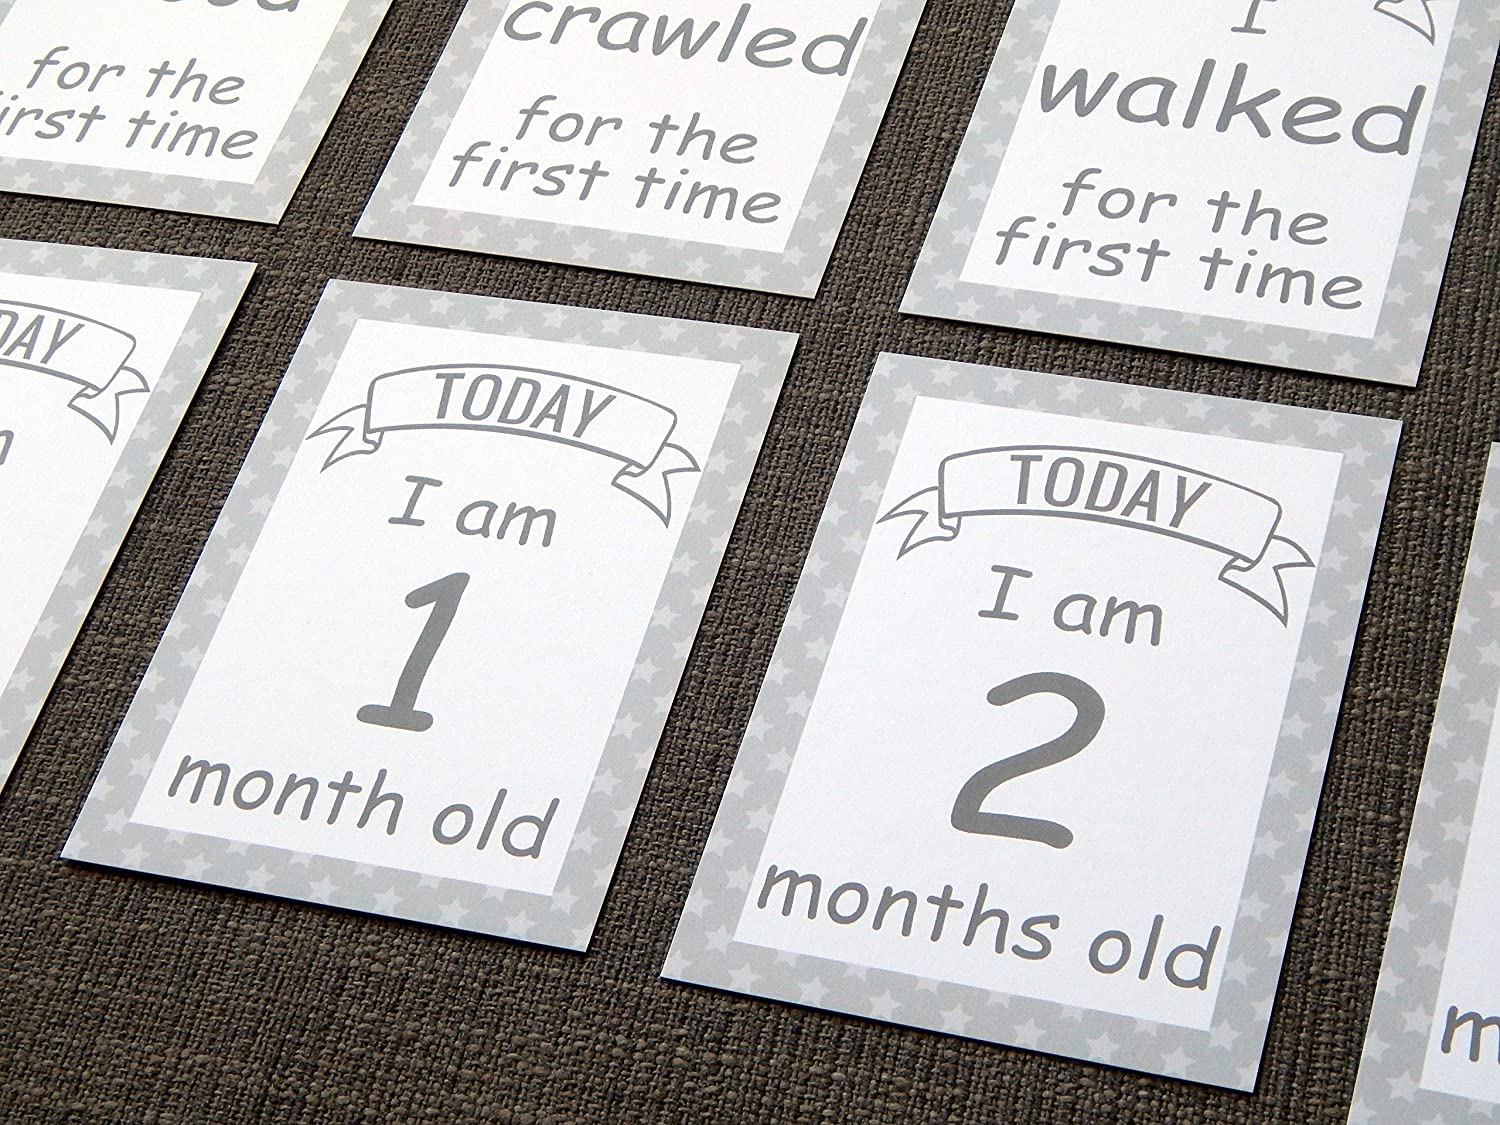 Babys 1st Year Mile Stone Journey Picture Card Props Baby Milestone Cards Gift Set Newborn Child Christening Baby Shower Gift Yellow /& Grey